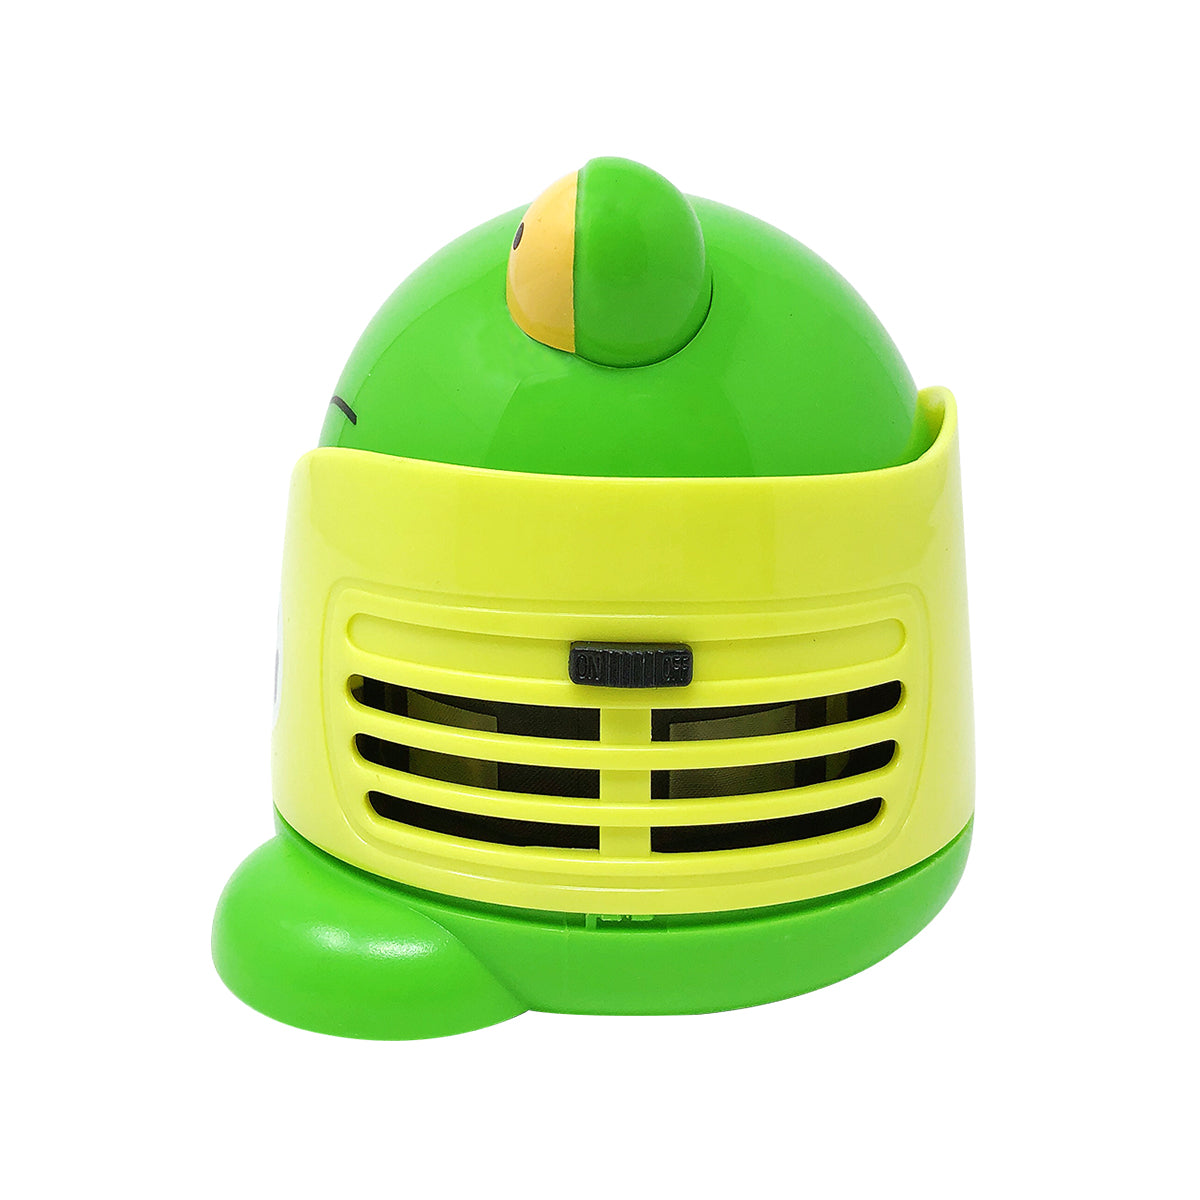 Wrapables Cute Portable Mini Vacuum Cleaner for Home and Office, Frog